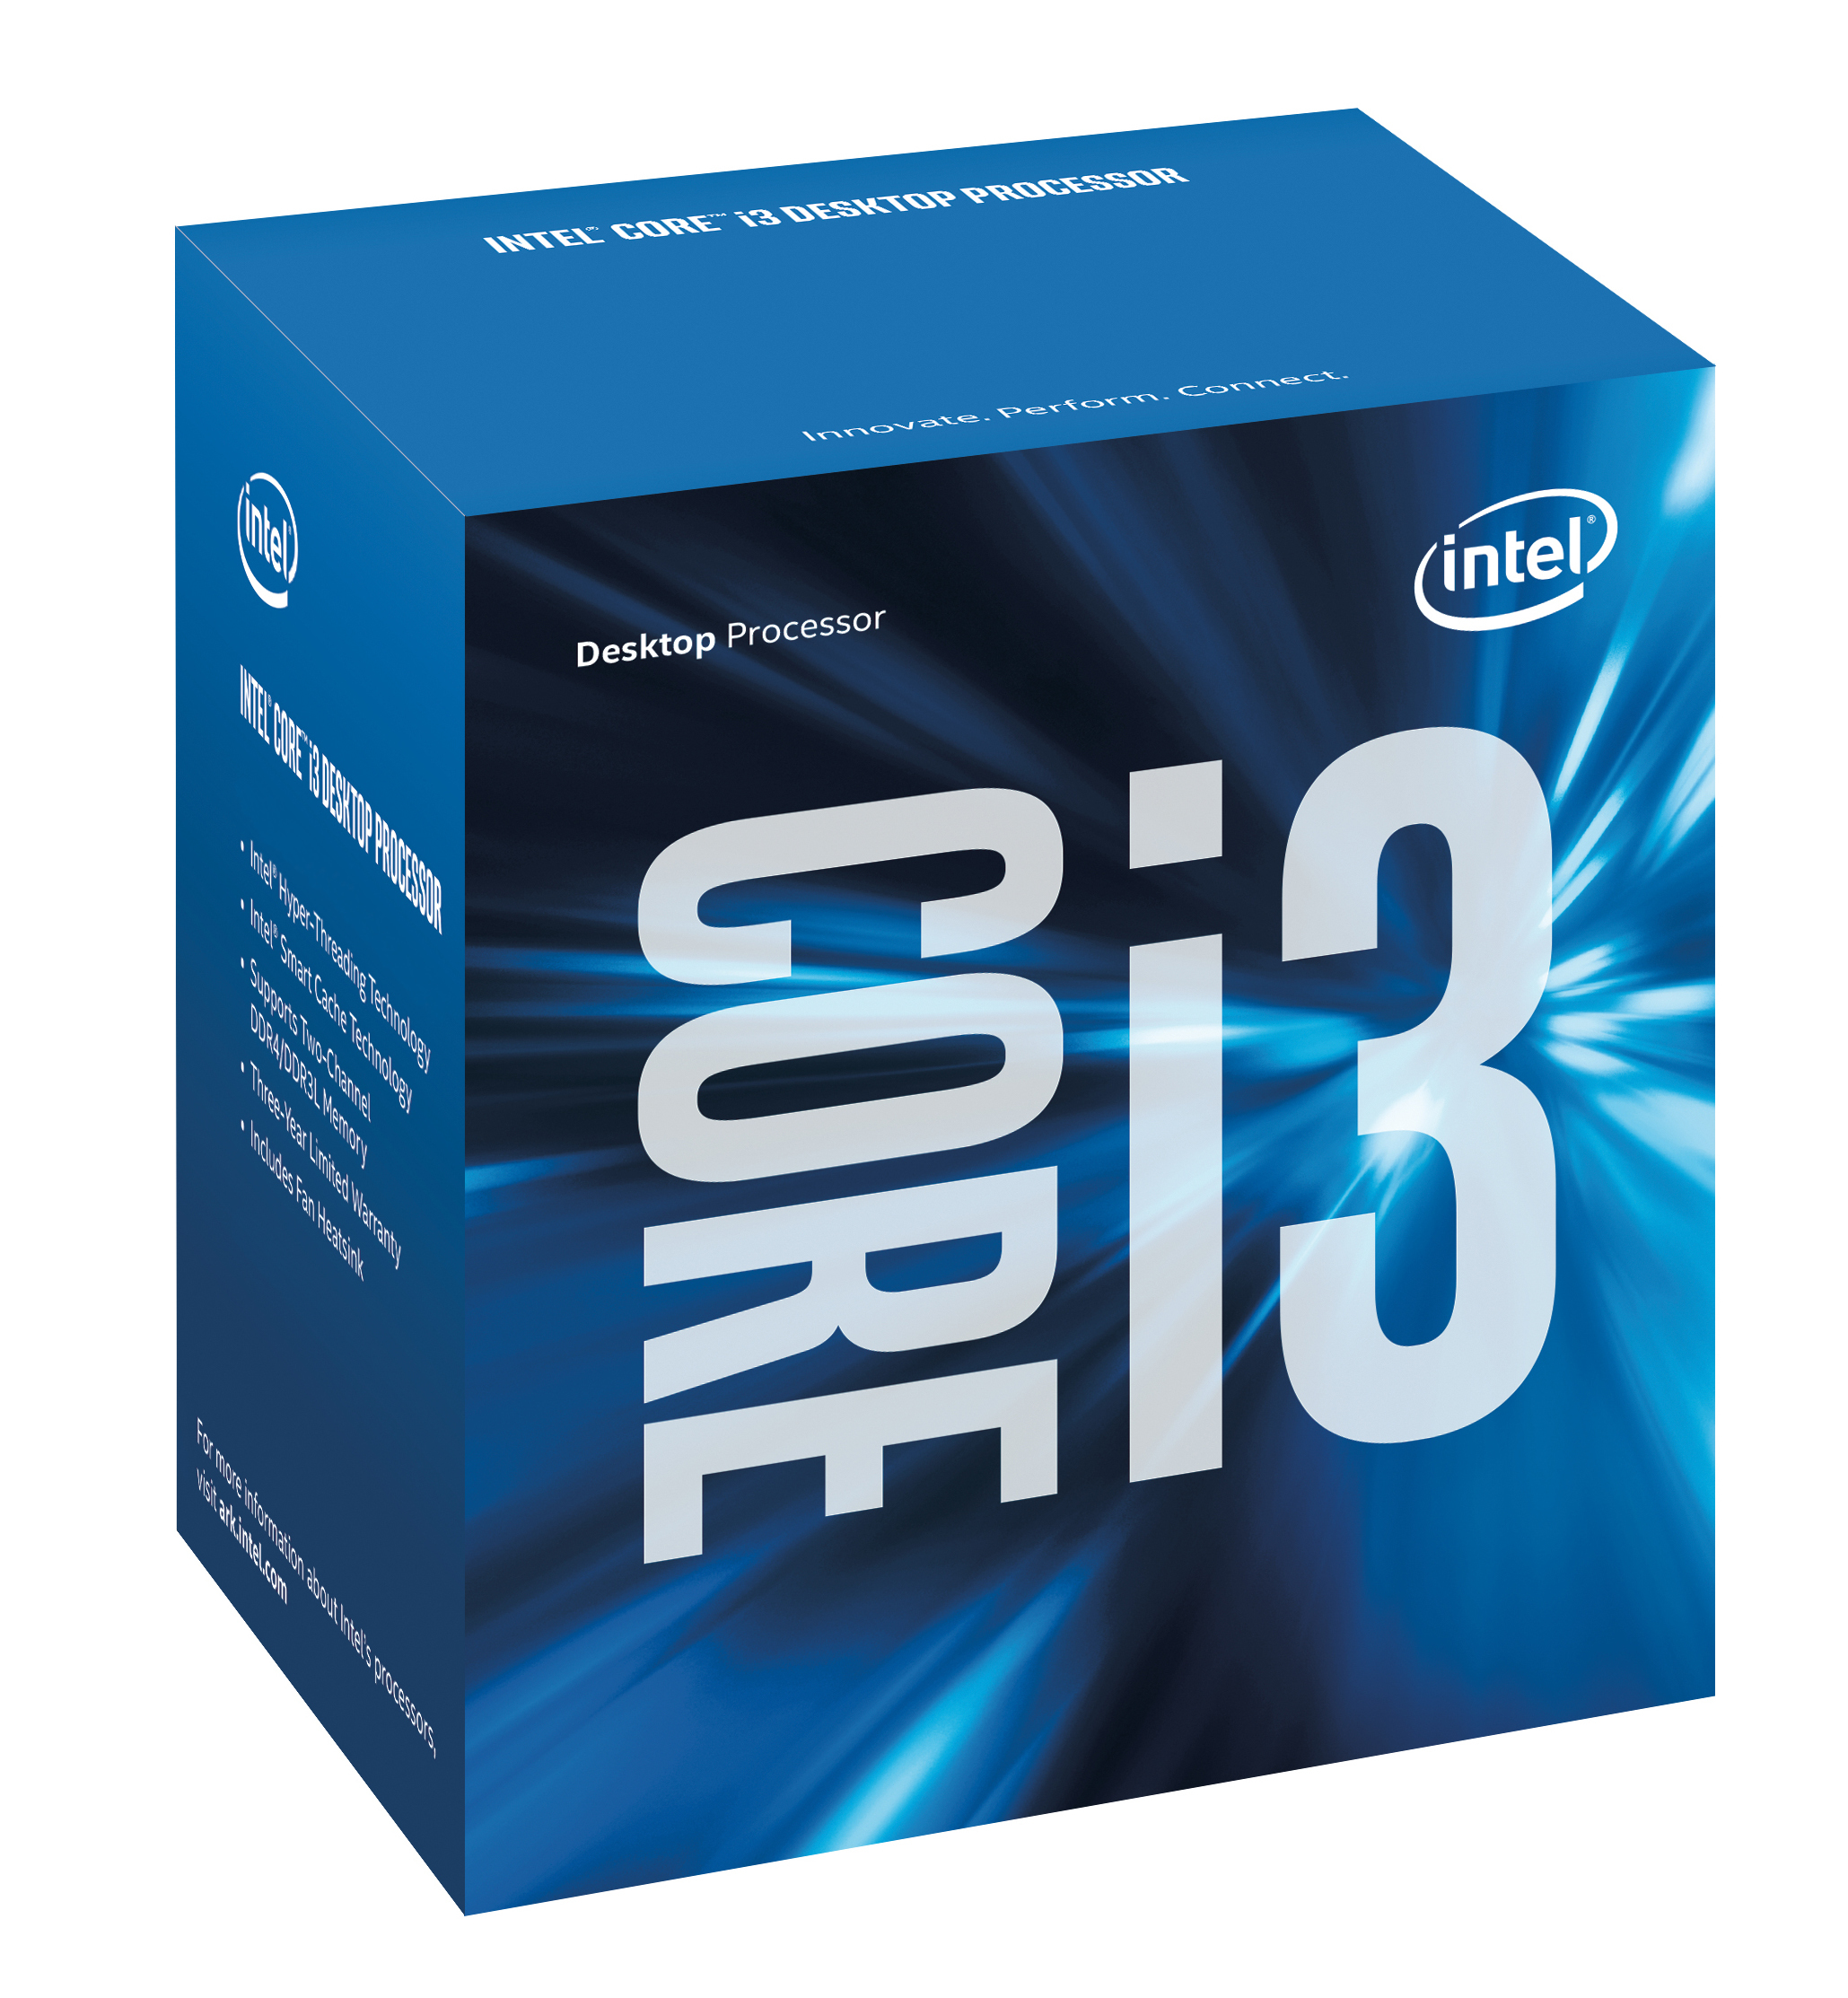 Intel Core i3-4170 Core i3 3,7 GHz - Skt 1150 Haswell 22 nm - 54 W